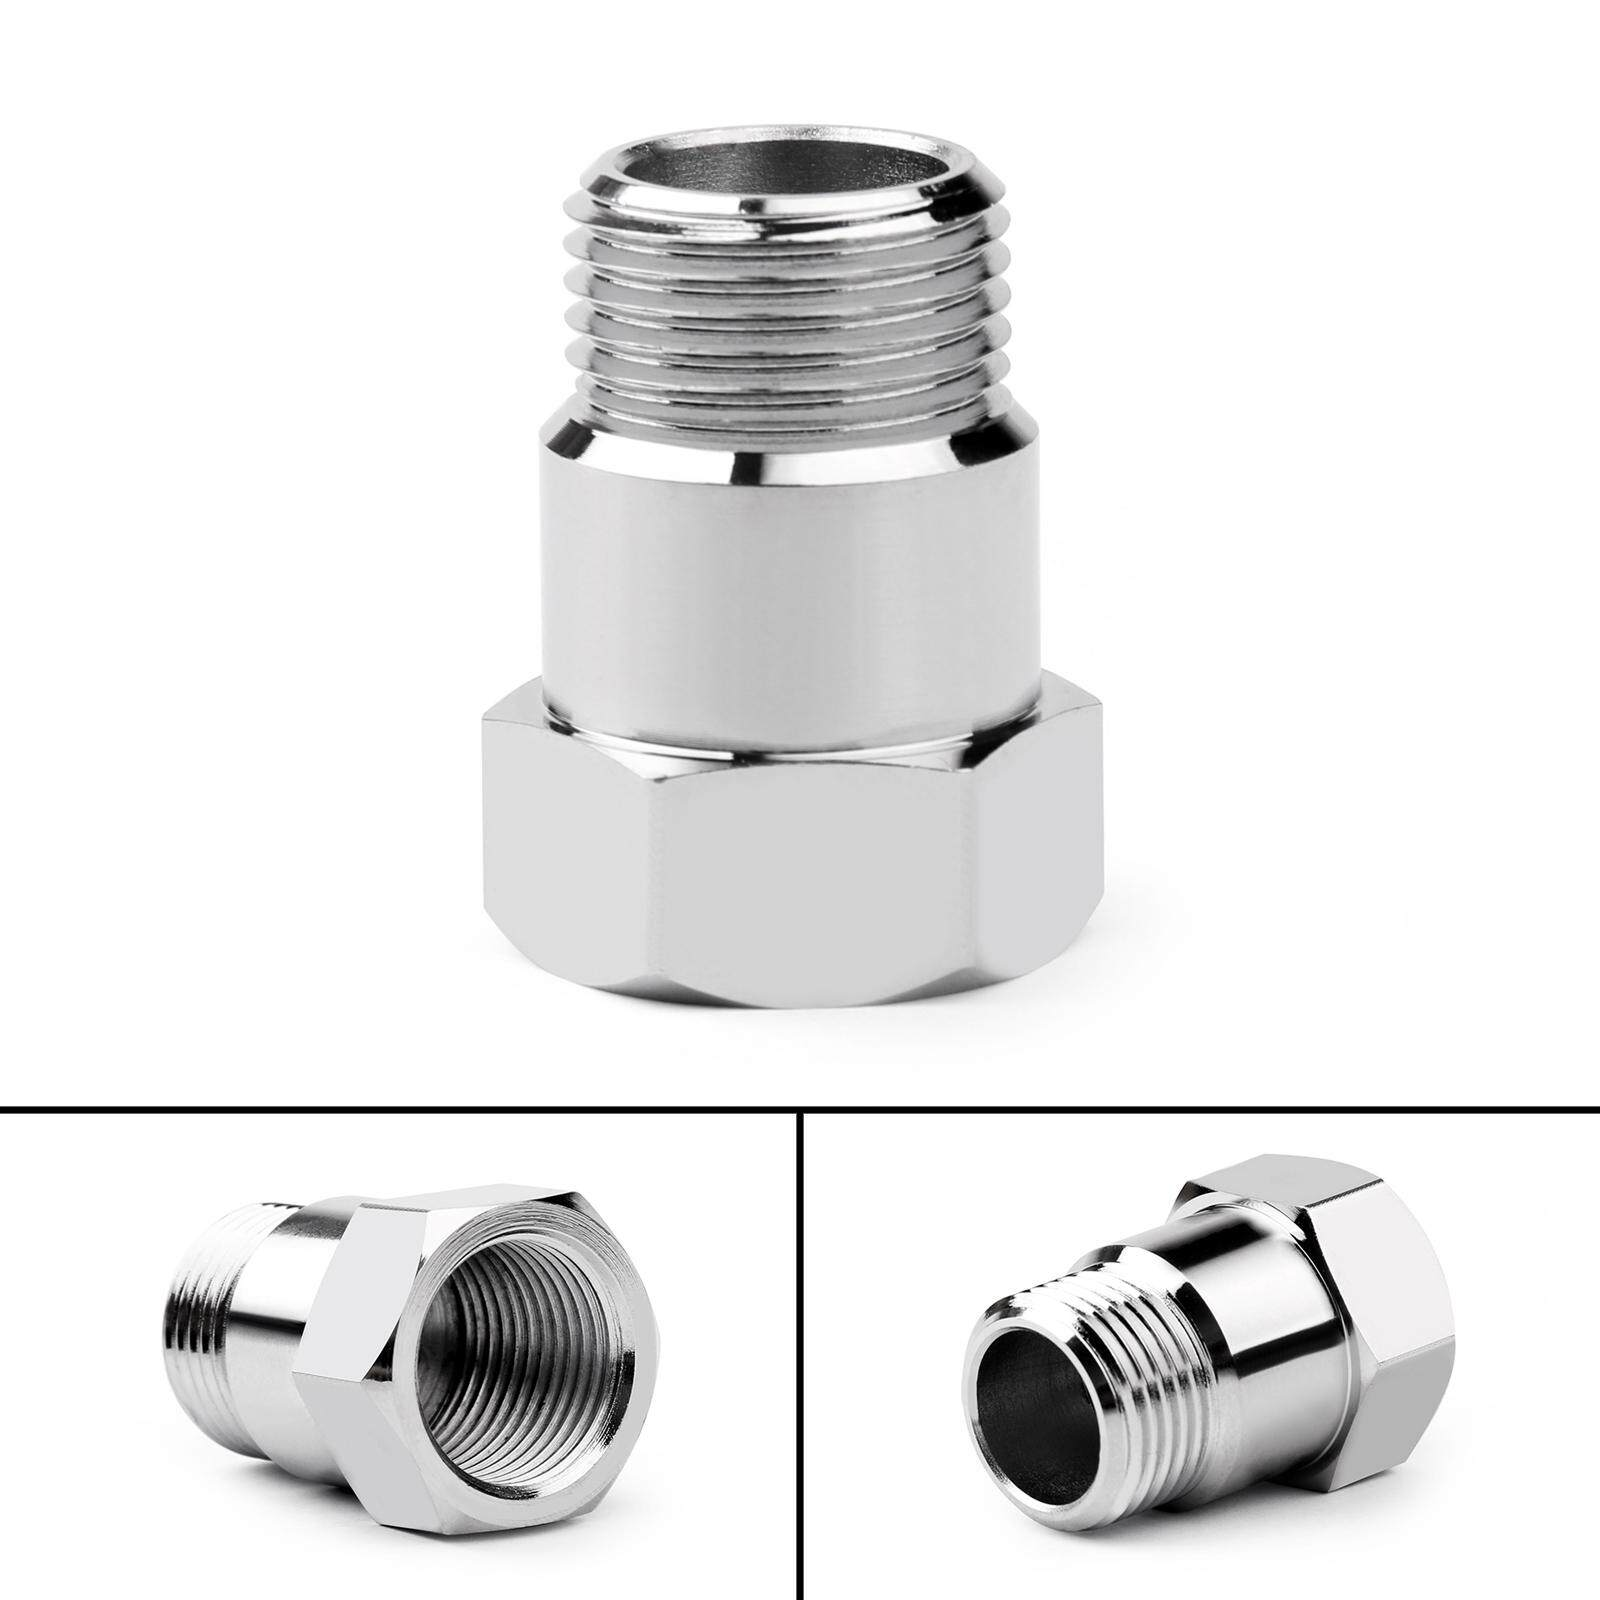 Areyourshop O2 Oxygen Sensor Test Pipe Extension Extender Adapter Spacer M18 X 1.5 Bung 32mm By Areyourshop.